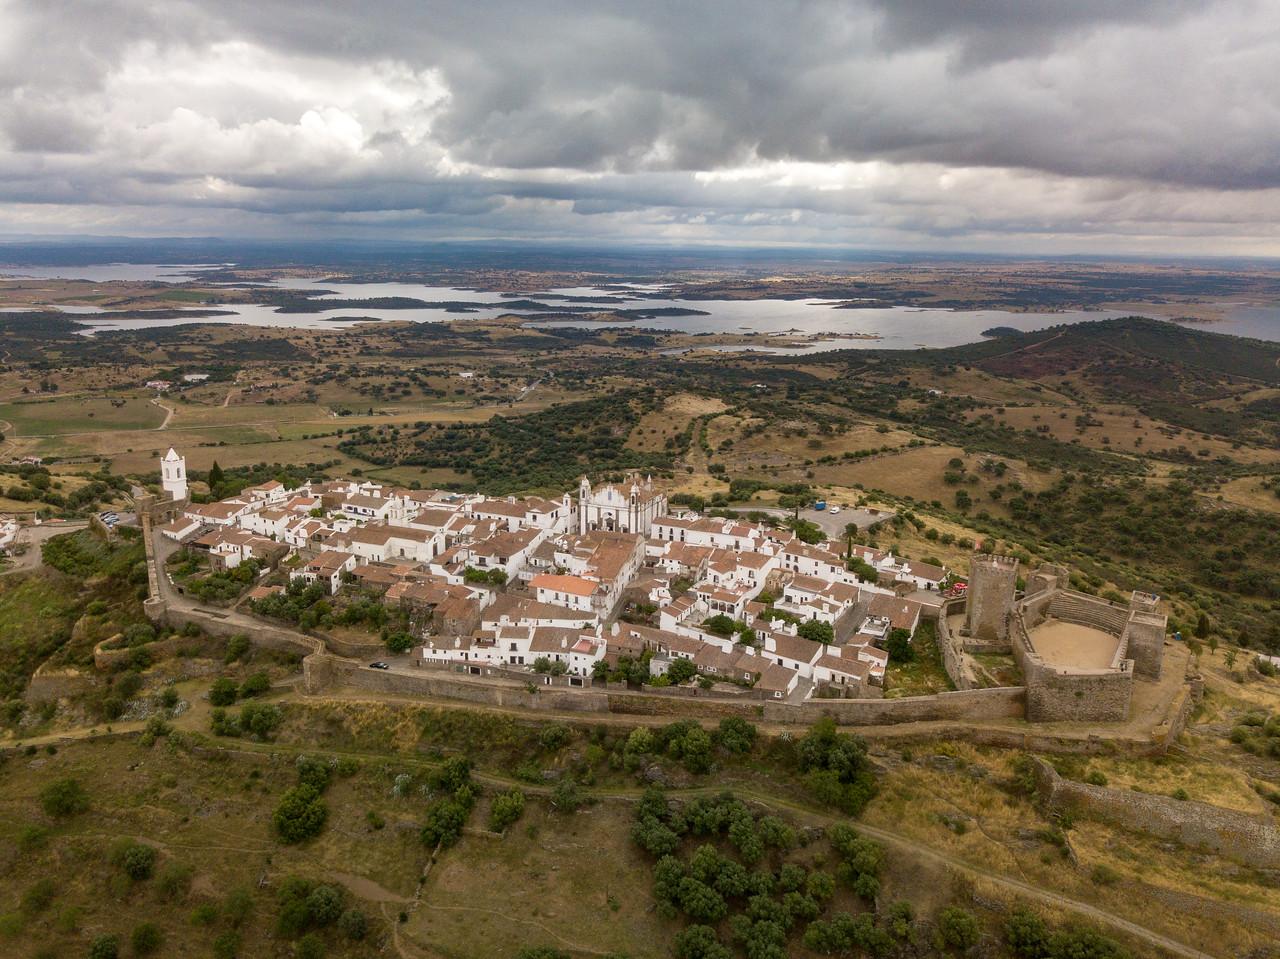 Drone Image of Montsaraz, Portugal